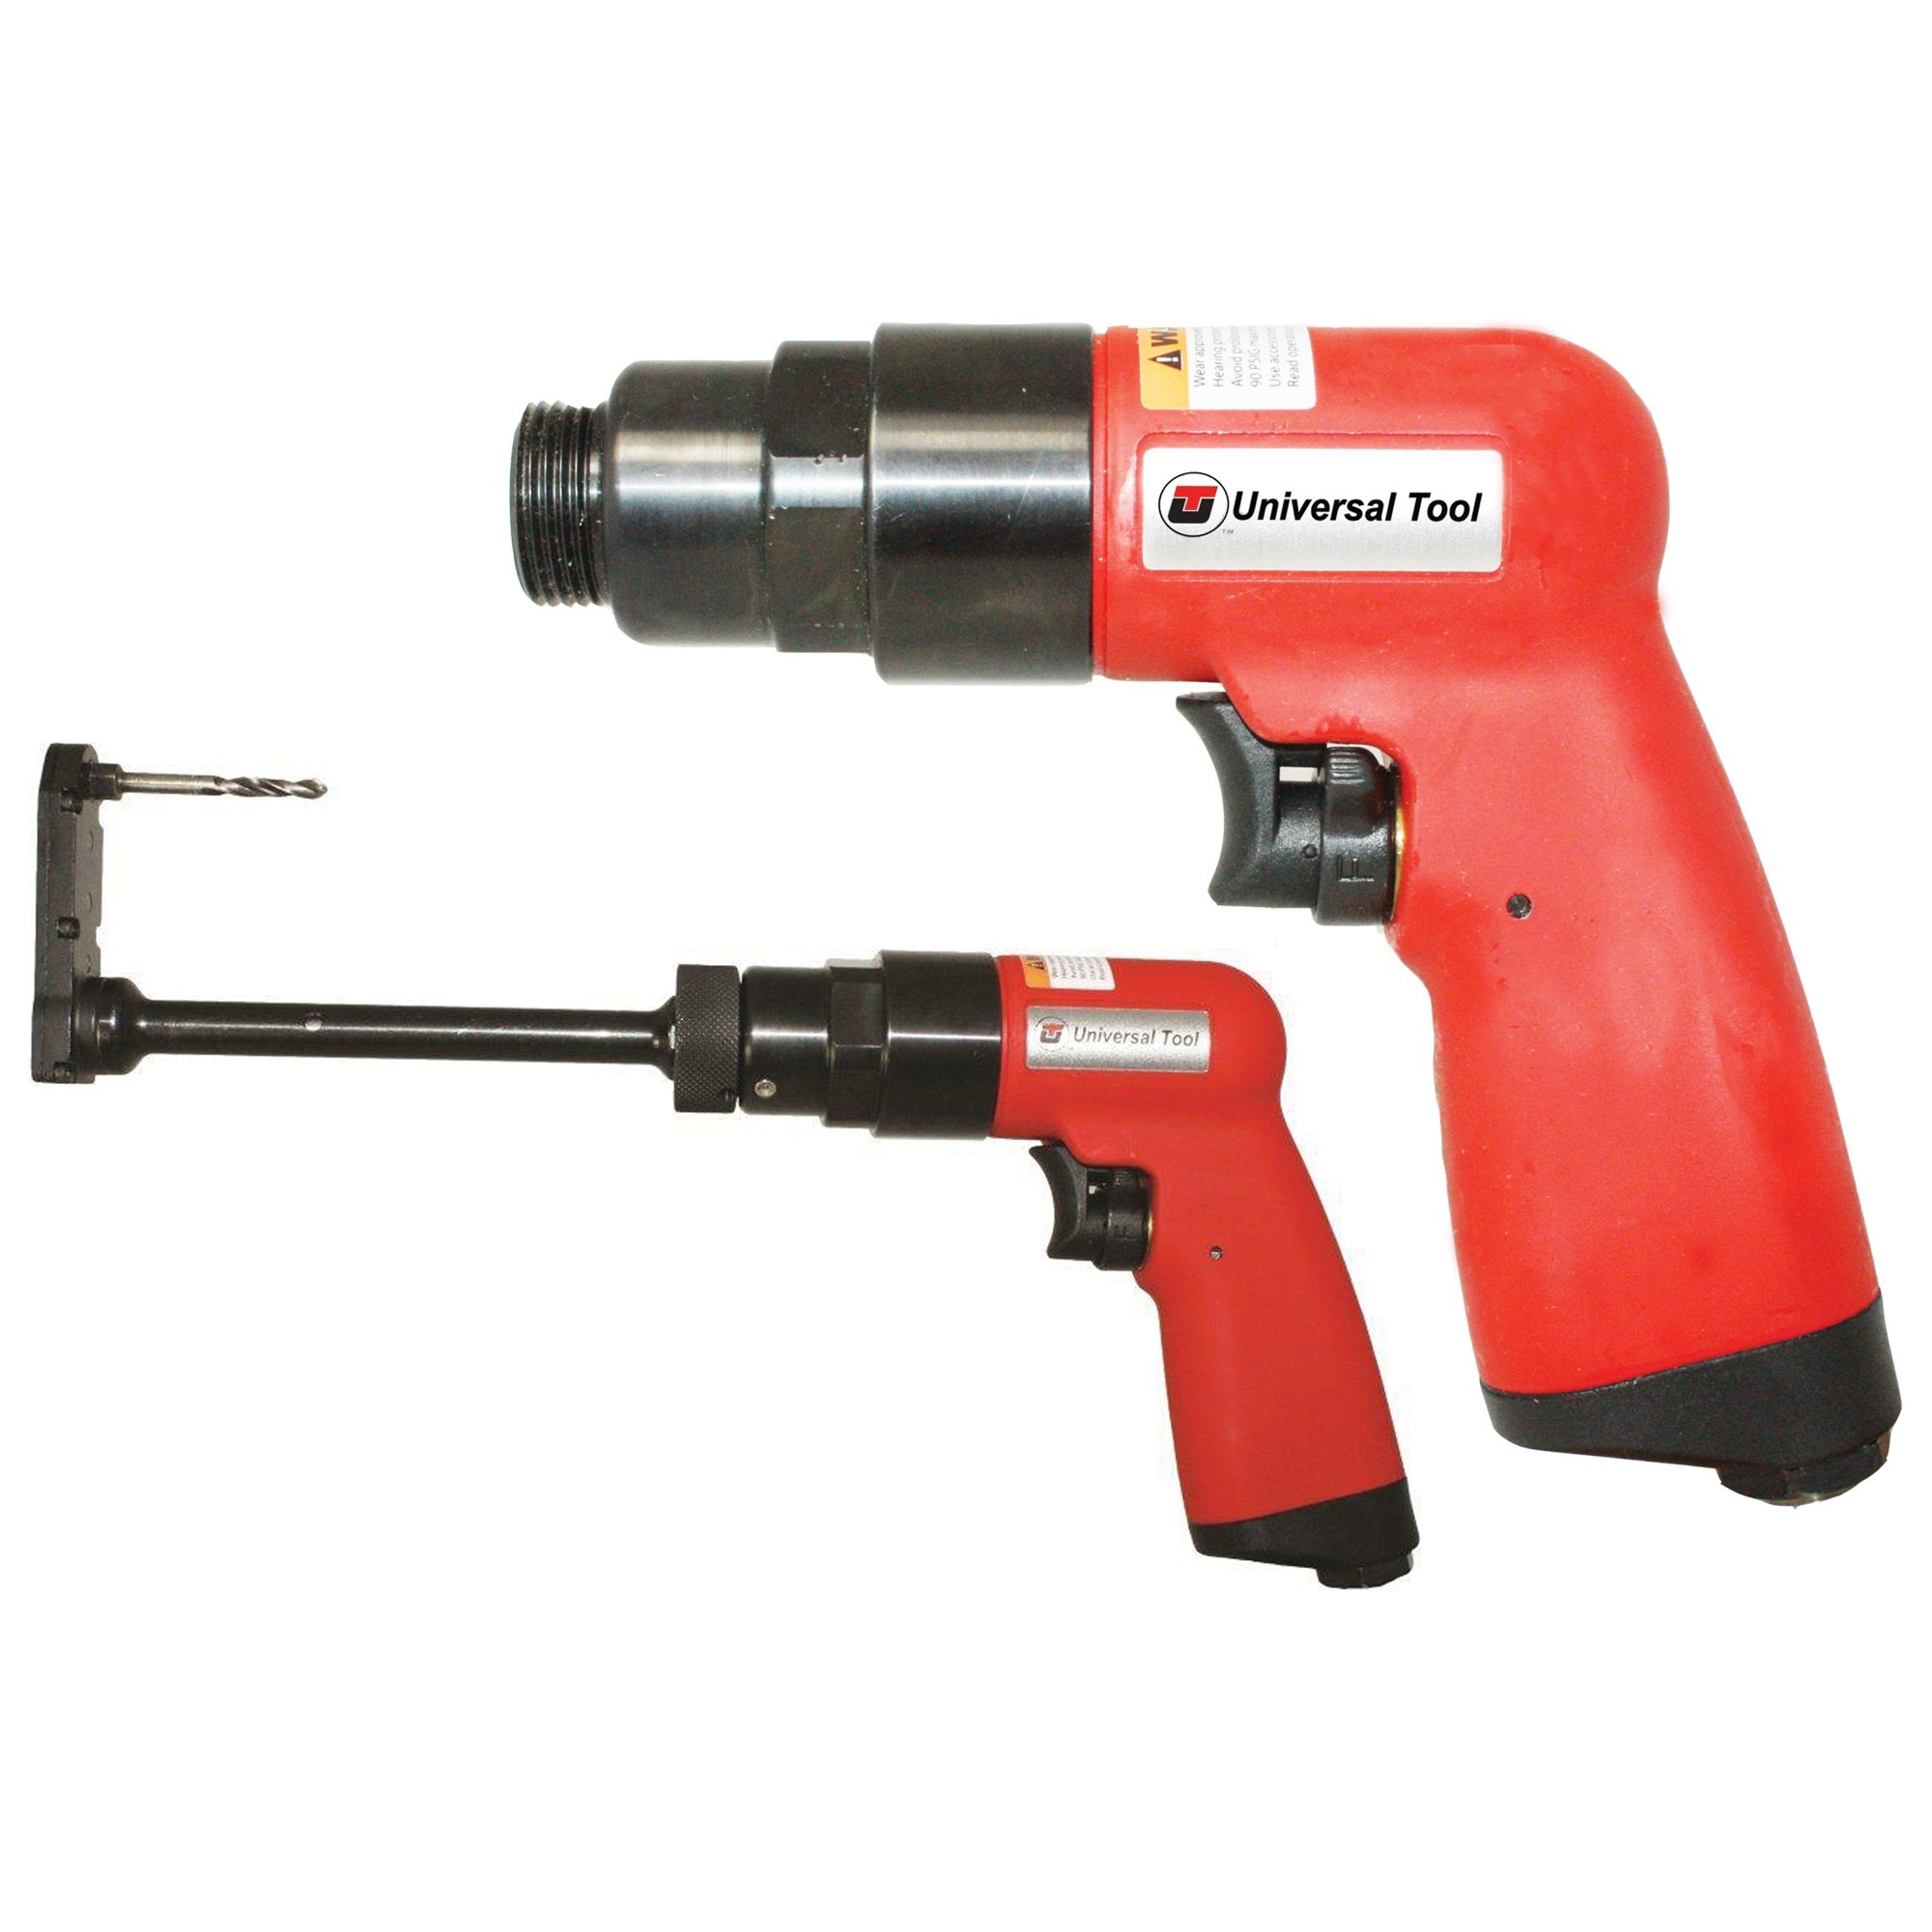 Aircraft Reversible Drill 1800 RPM